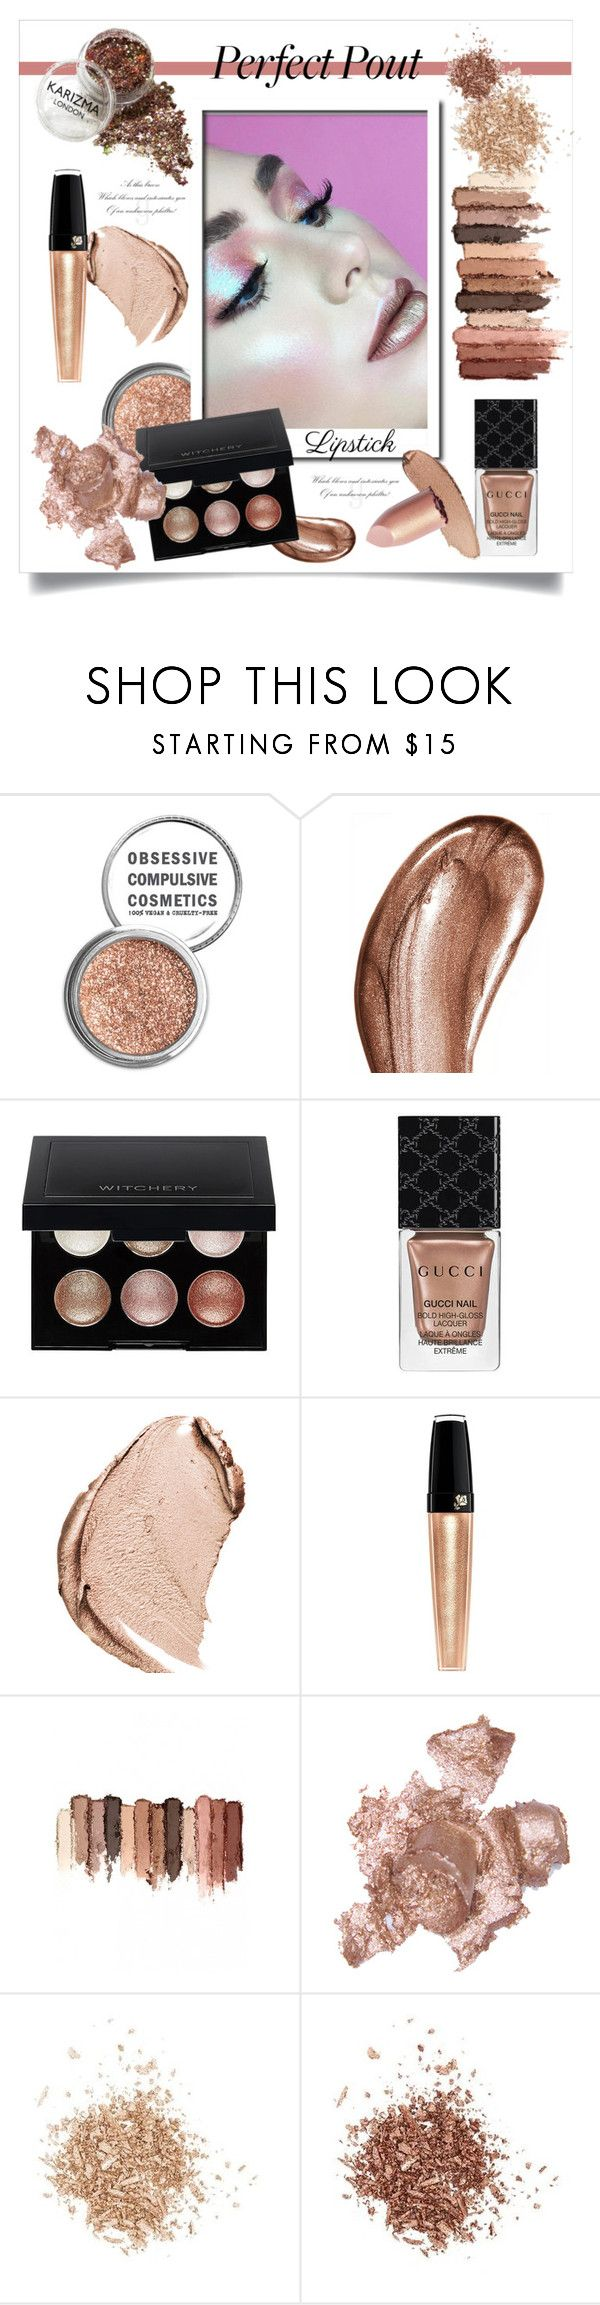 """""""Высокий Блеск: Металлик Помада!"""" by miss-image ❤ liked on Polyvore featuring beauty, Obsessive Compulsive Cosmetics, Laura Mercier, Witchery, Gucci, Christian Dior, tarte, By Terry and Topshop"""